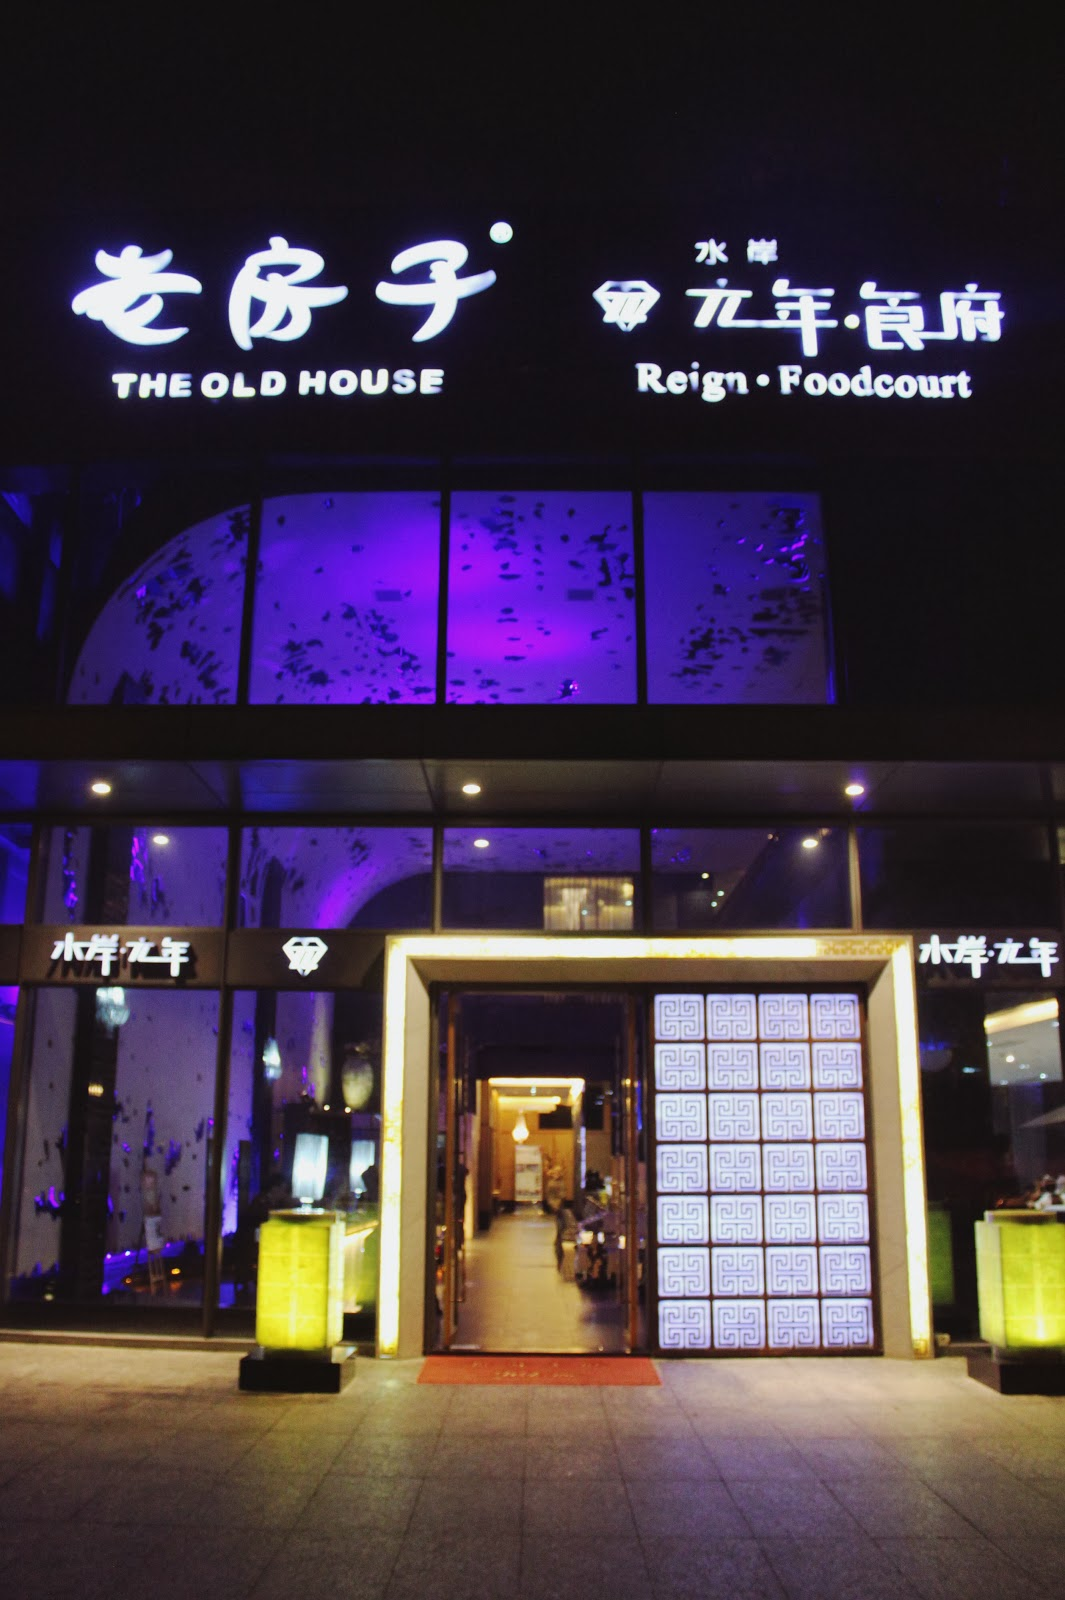 老房子水岸元年食府 The Old House 四川菜 Szechuan Cuisine @ 中国广东深圳华侨城 Baishi Rd, Shenzhen, Guangdong, China